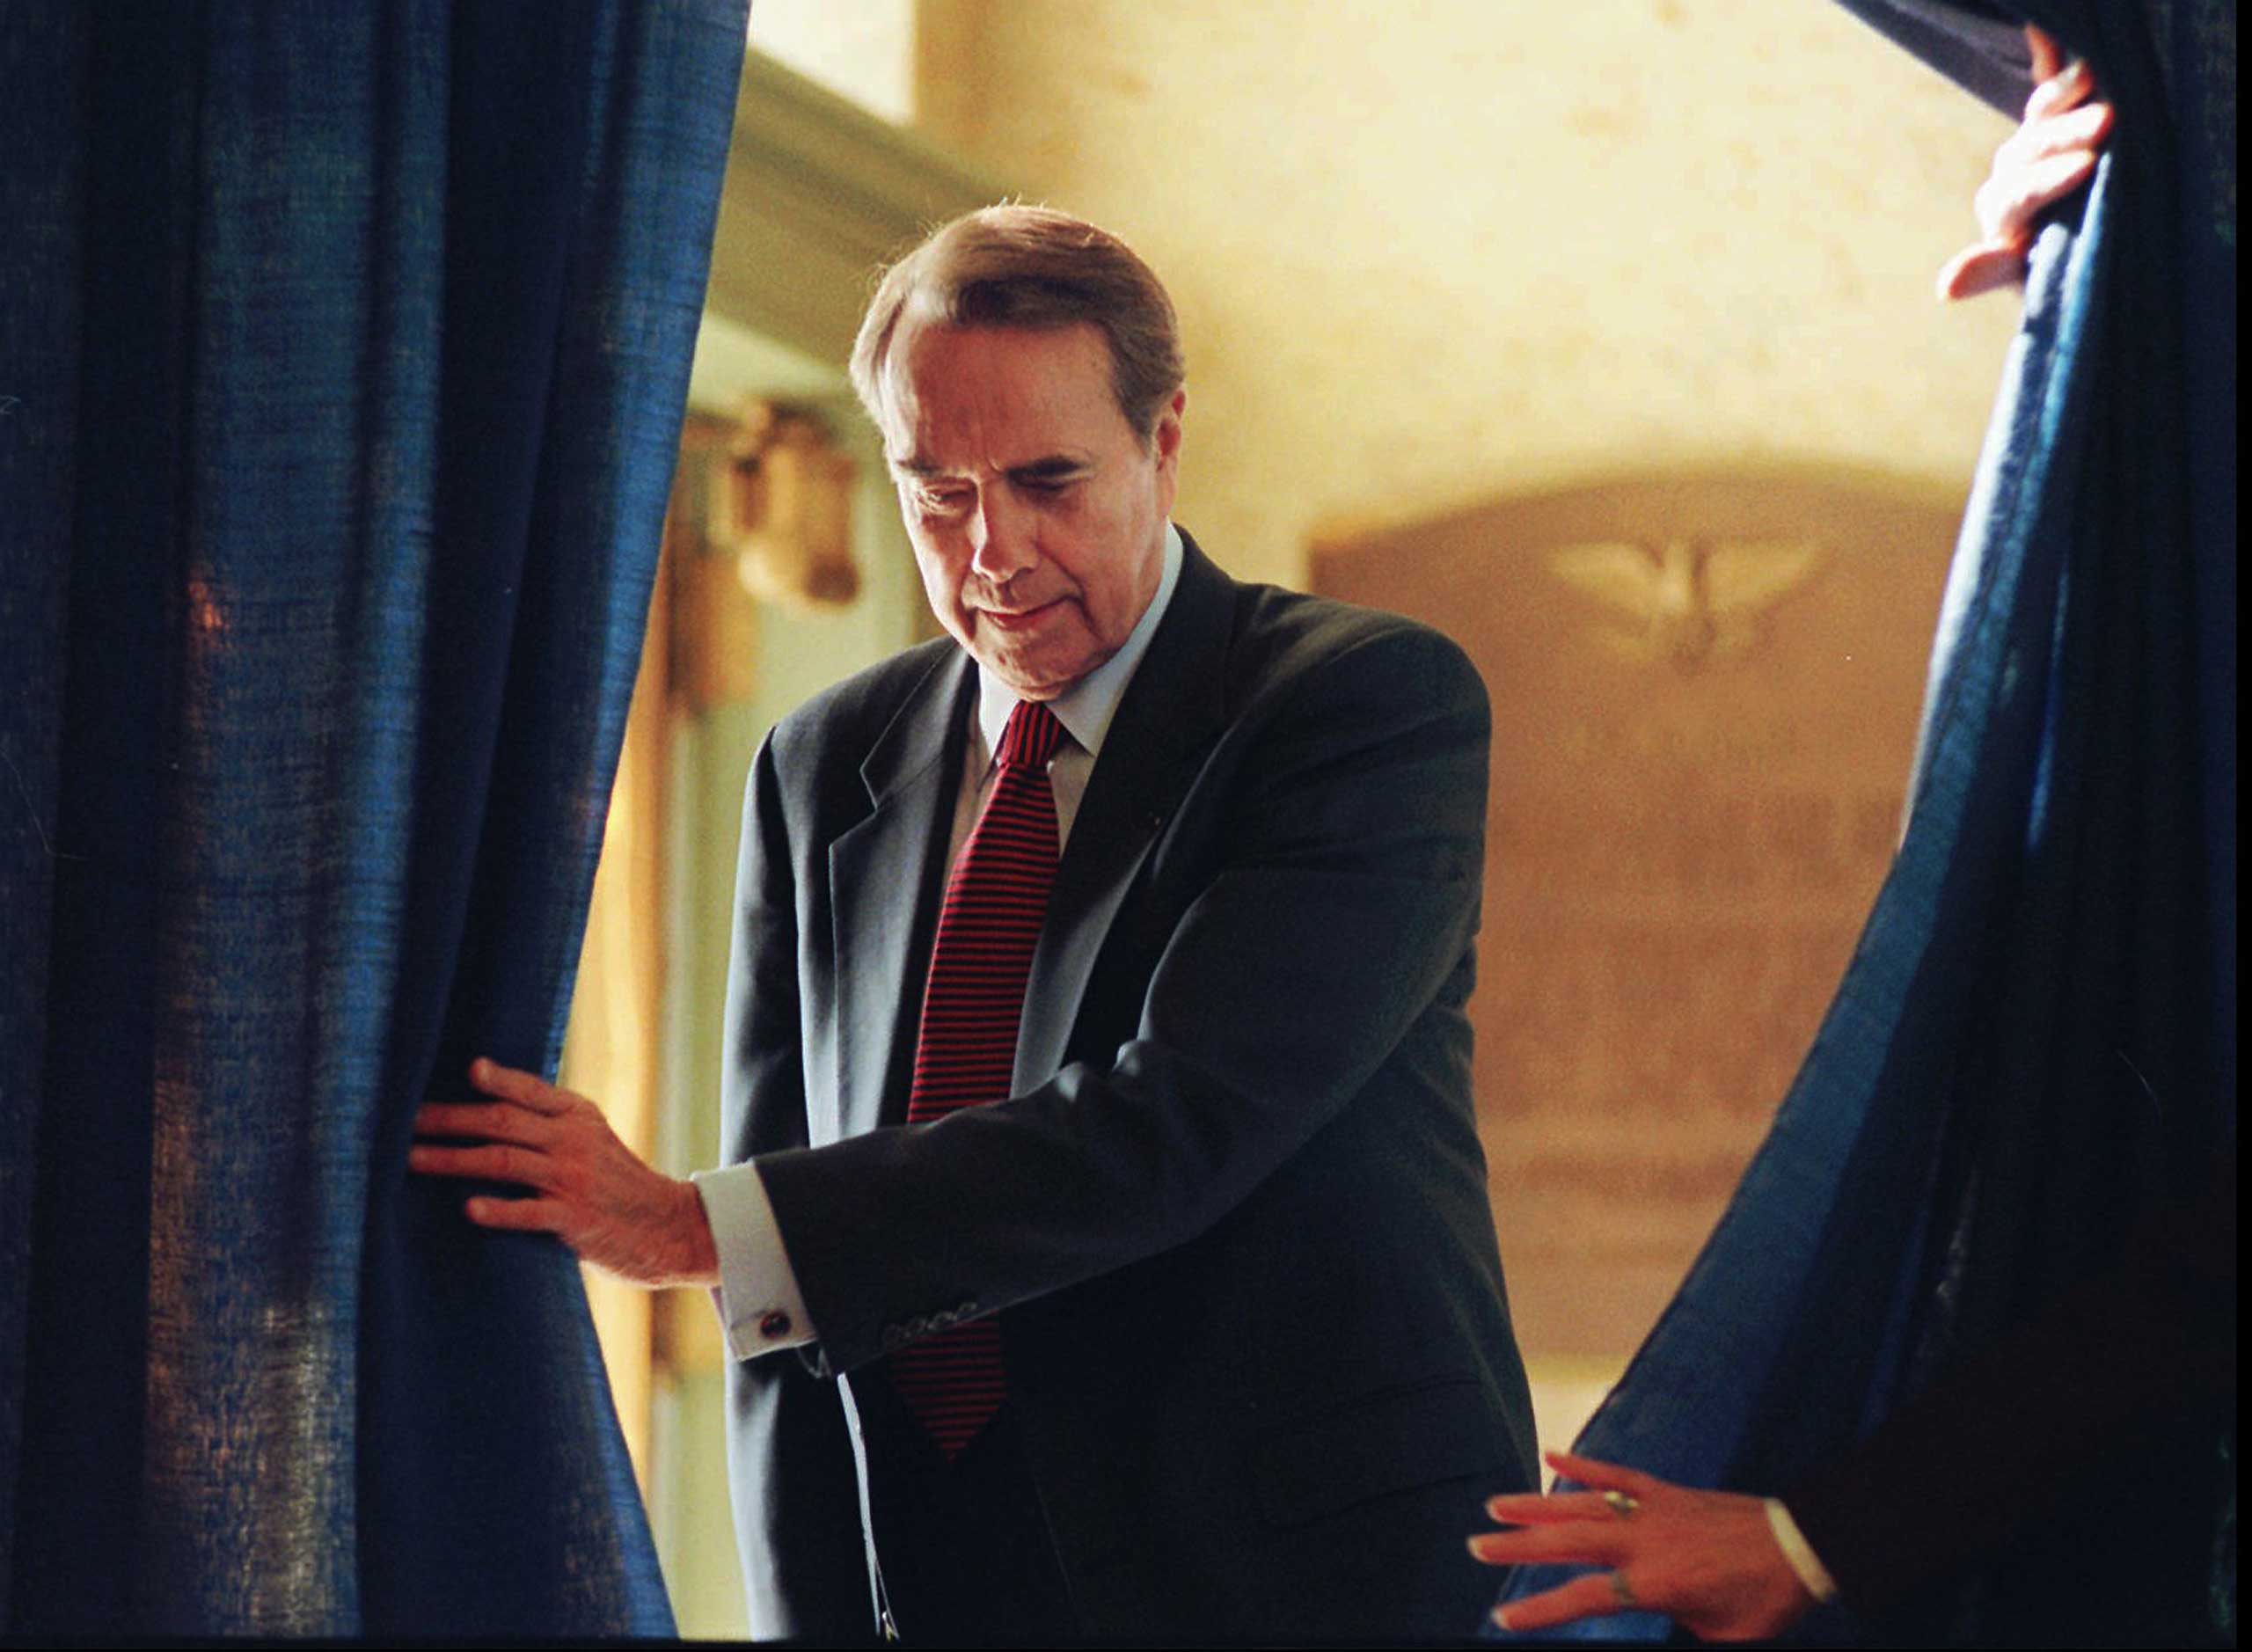 Sen. Bob Dole gave the response to Clinton in 1996. Later that year, he ran against Clinton and lost.